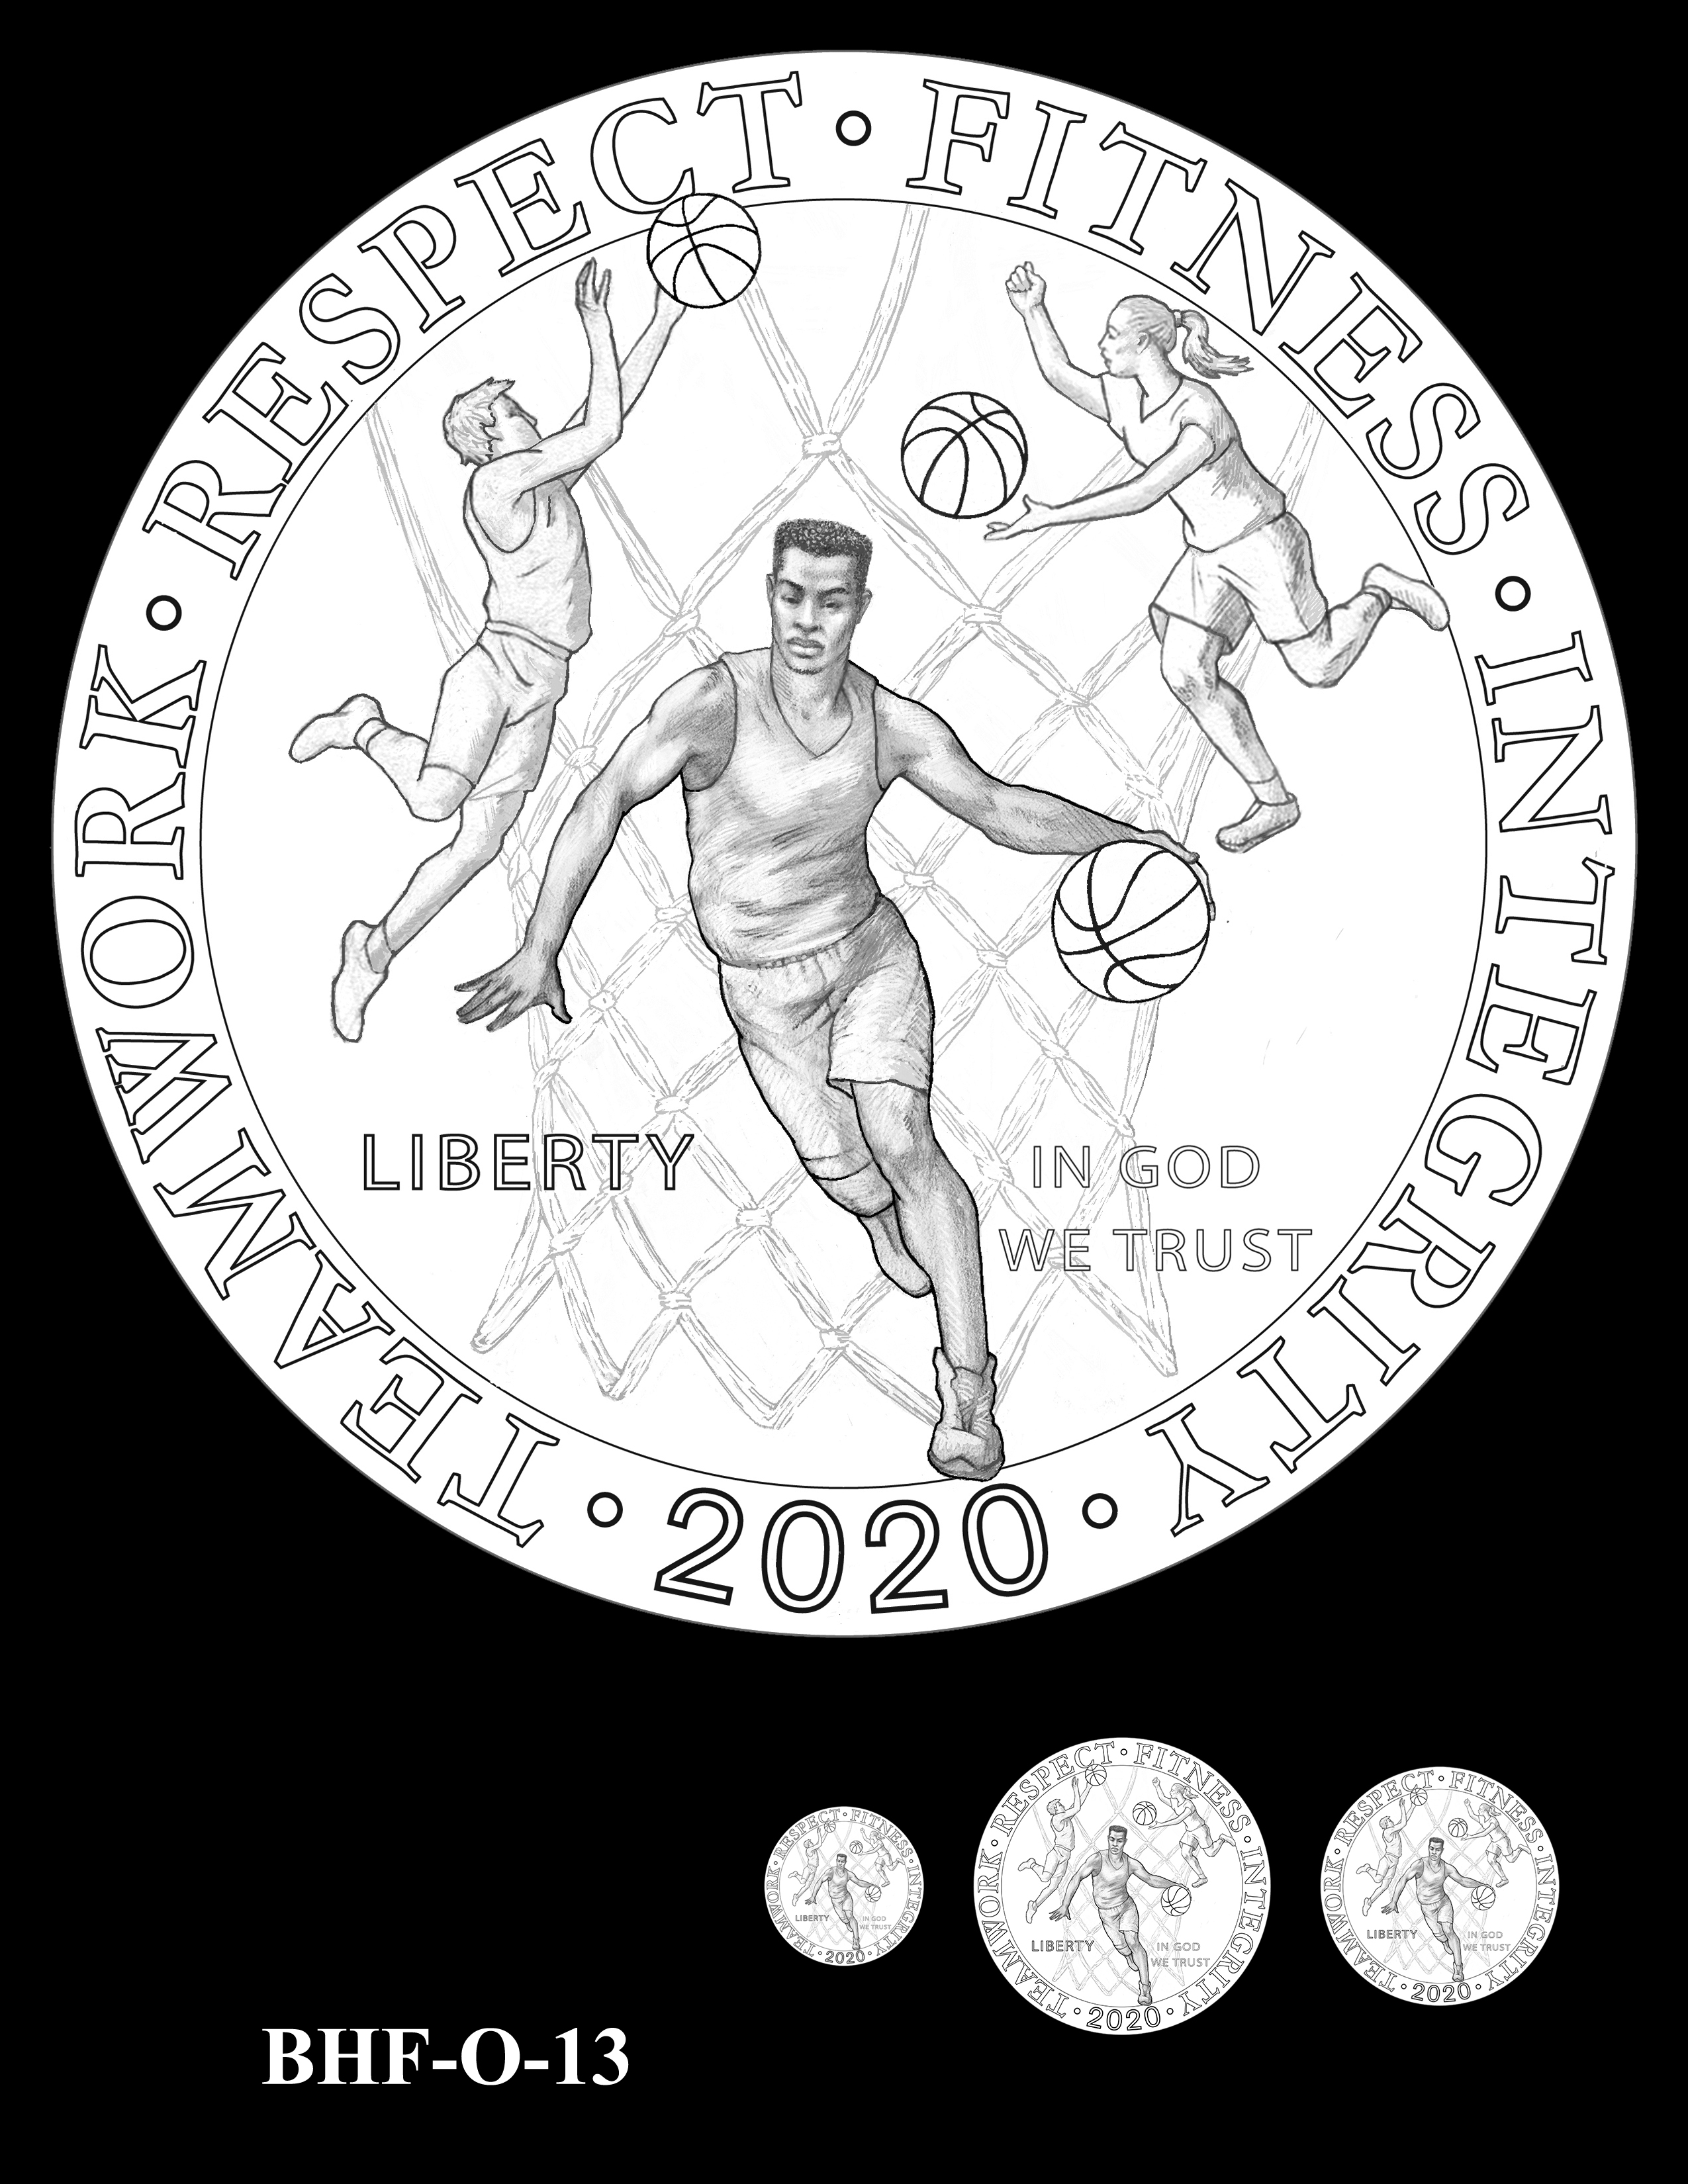 BHF-O-13 -- 2020 Basketball Hall of Fame Commemorative Coin Program - Common Obverse